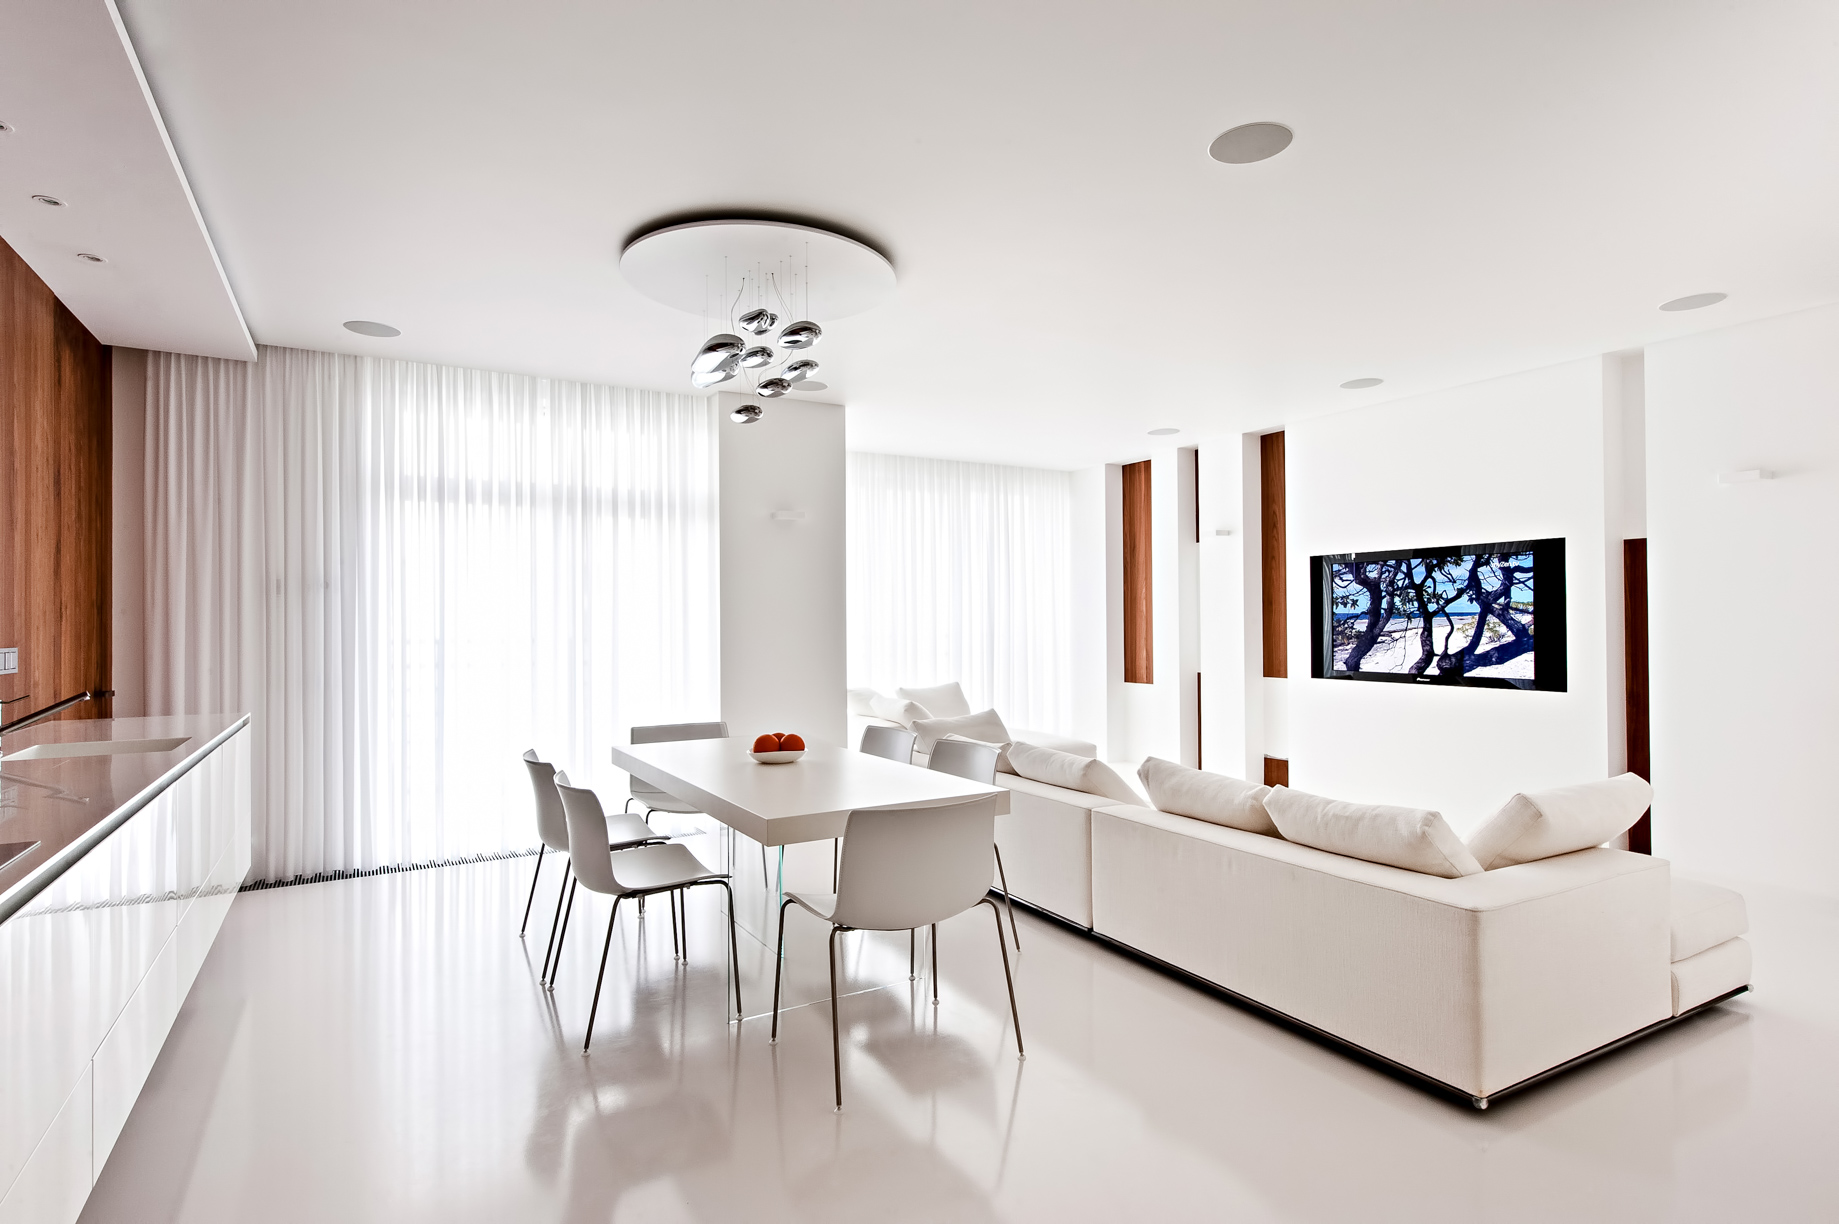 Welton Park Luxury Apartment - Moscow, Russia